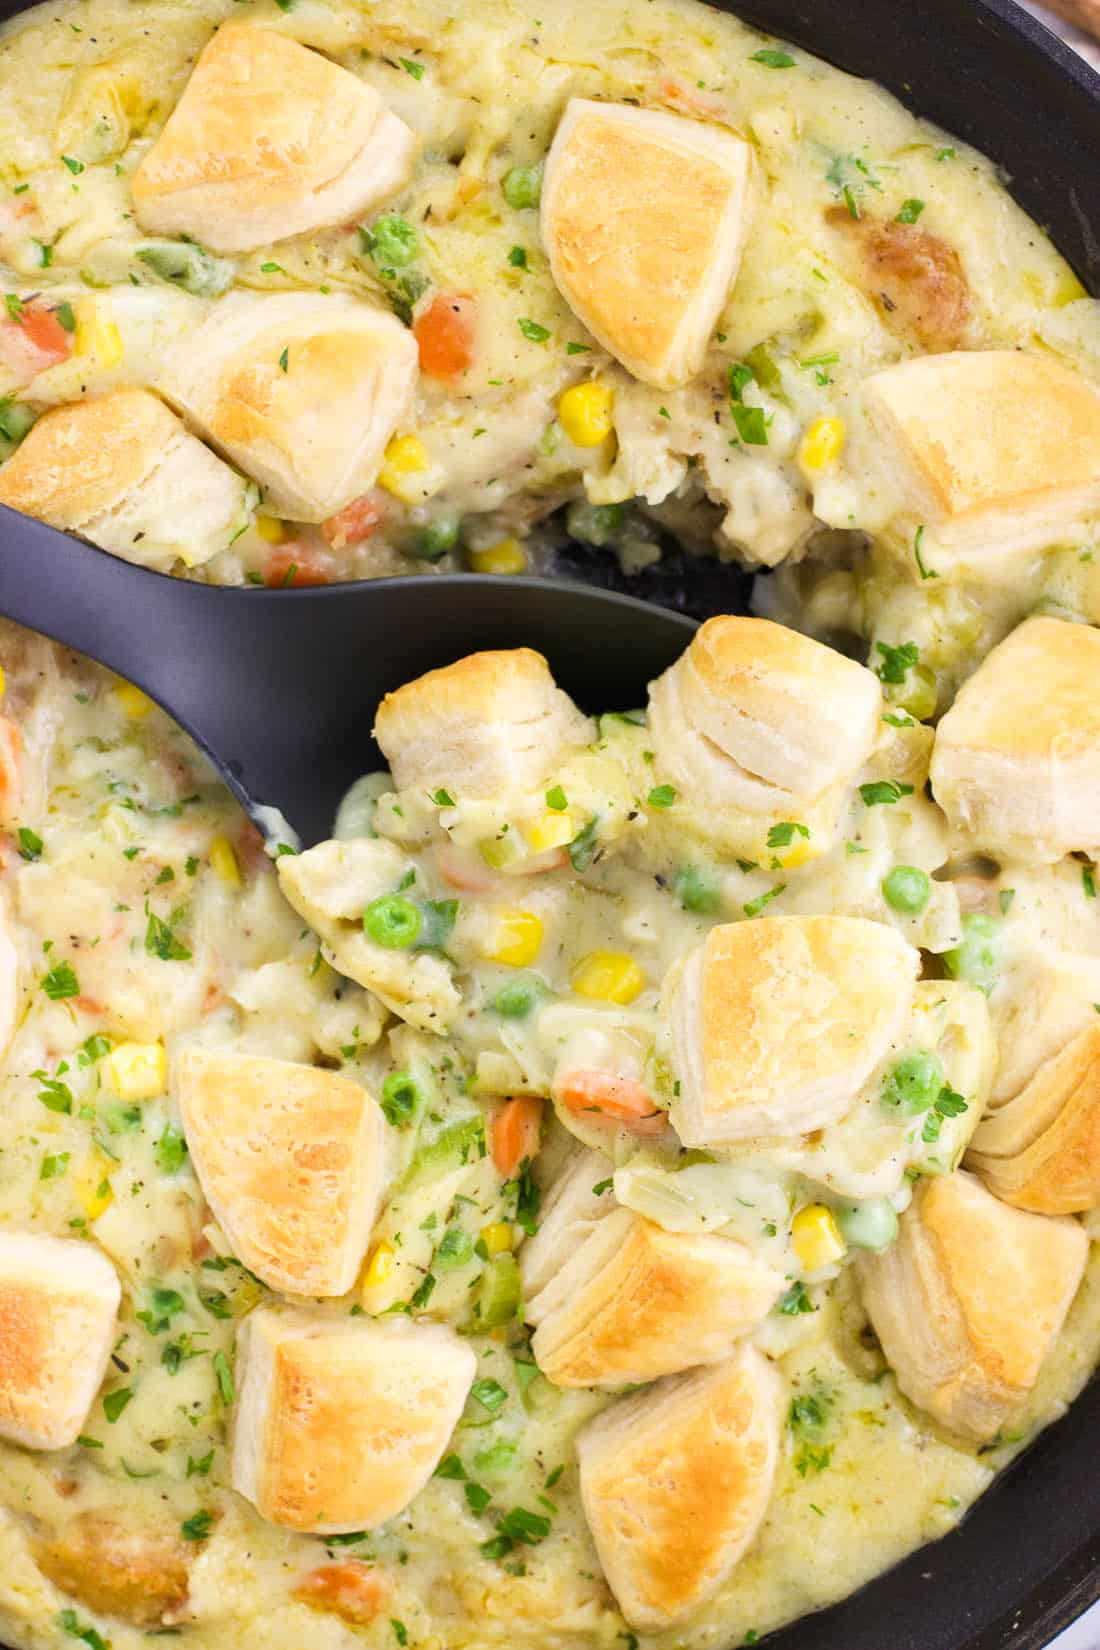 This creamy fish pot pie features warm spices and comes together in a skillet with a biscuit topping for a meal fit for weeknights or weekends alike. The whole family will love this easy pot pie recipe!